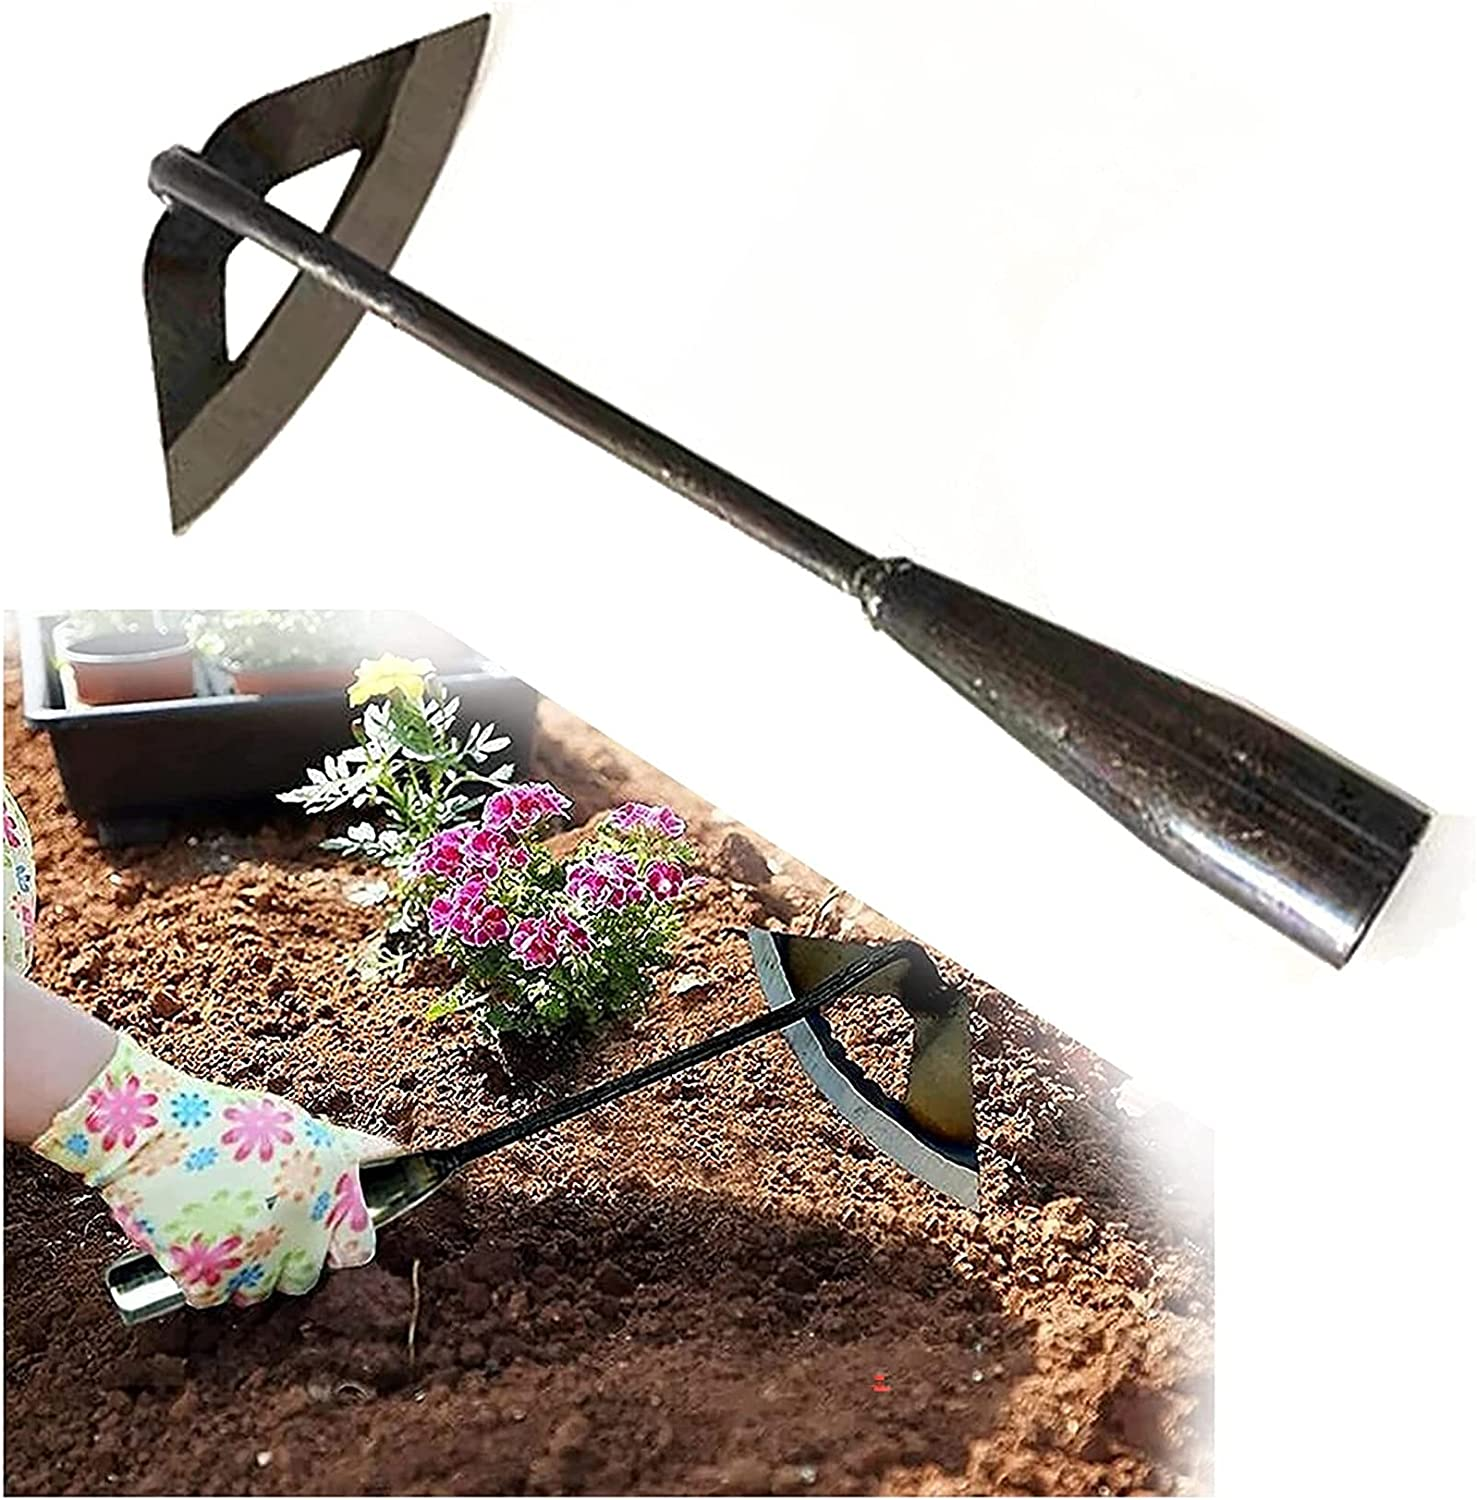 Nihexo All-Steel Hardened Hollow Hoe,Handheld Weeding Rake Planting Vegetables Farm,Sharp Durable Gardening Gifts for Hoe Garden Tool Traditional Steel Quenching Forging Process (1Pc)